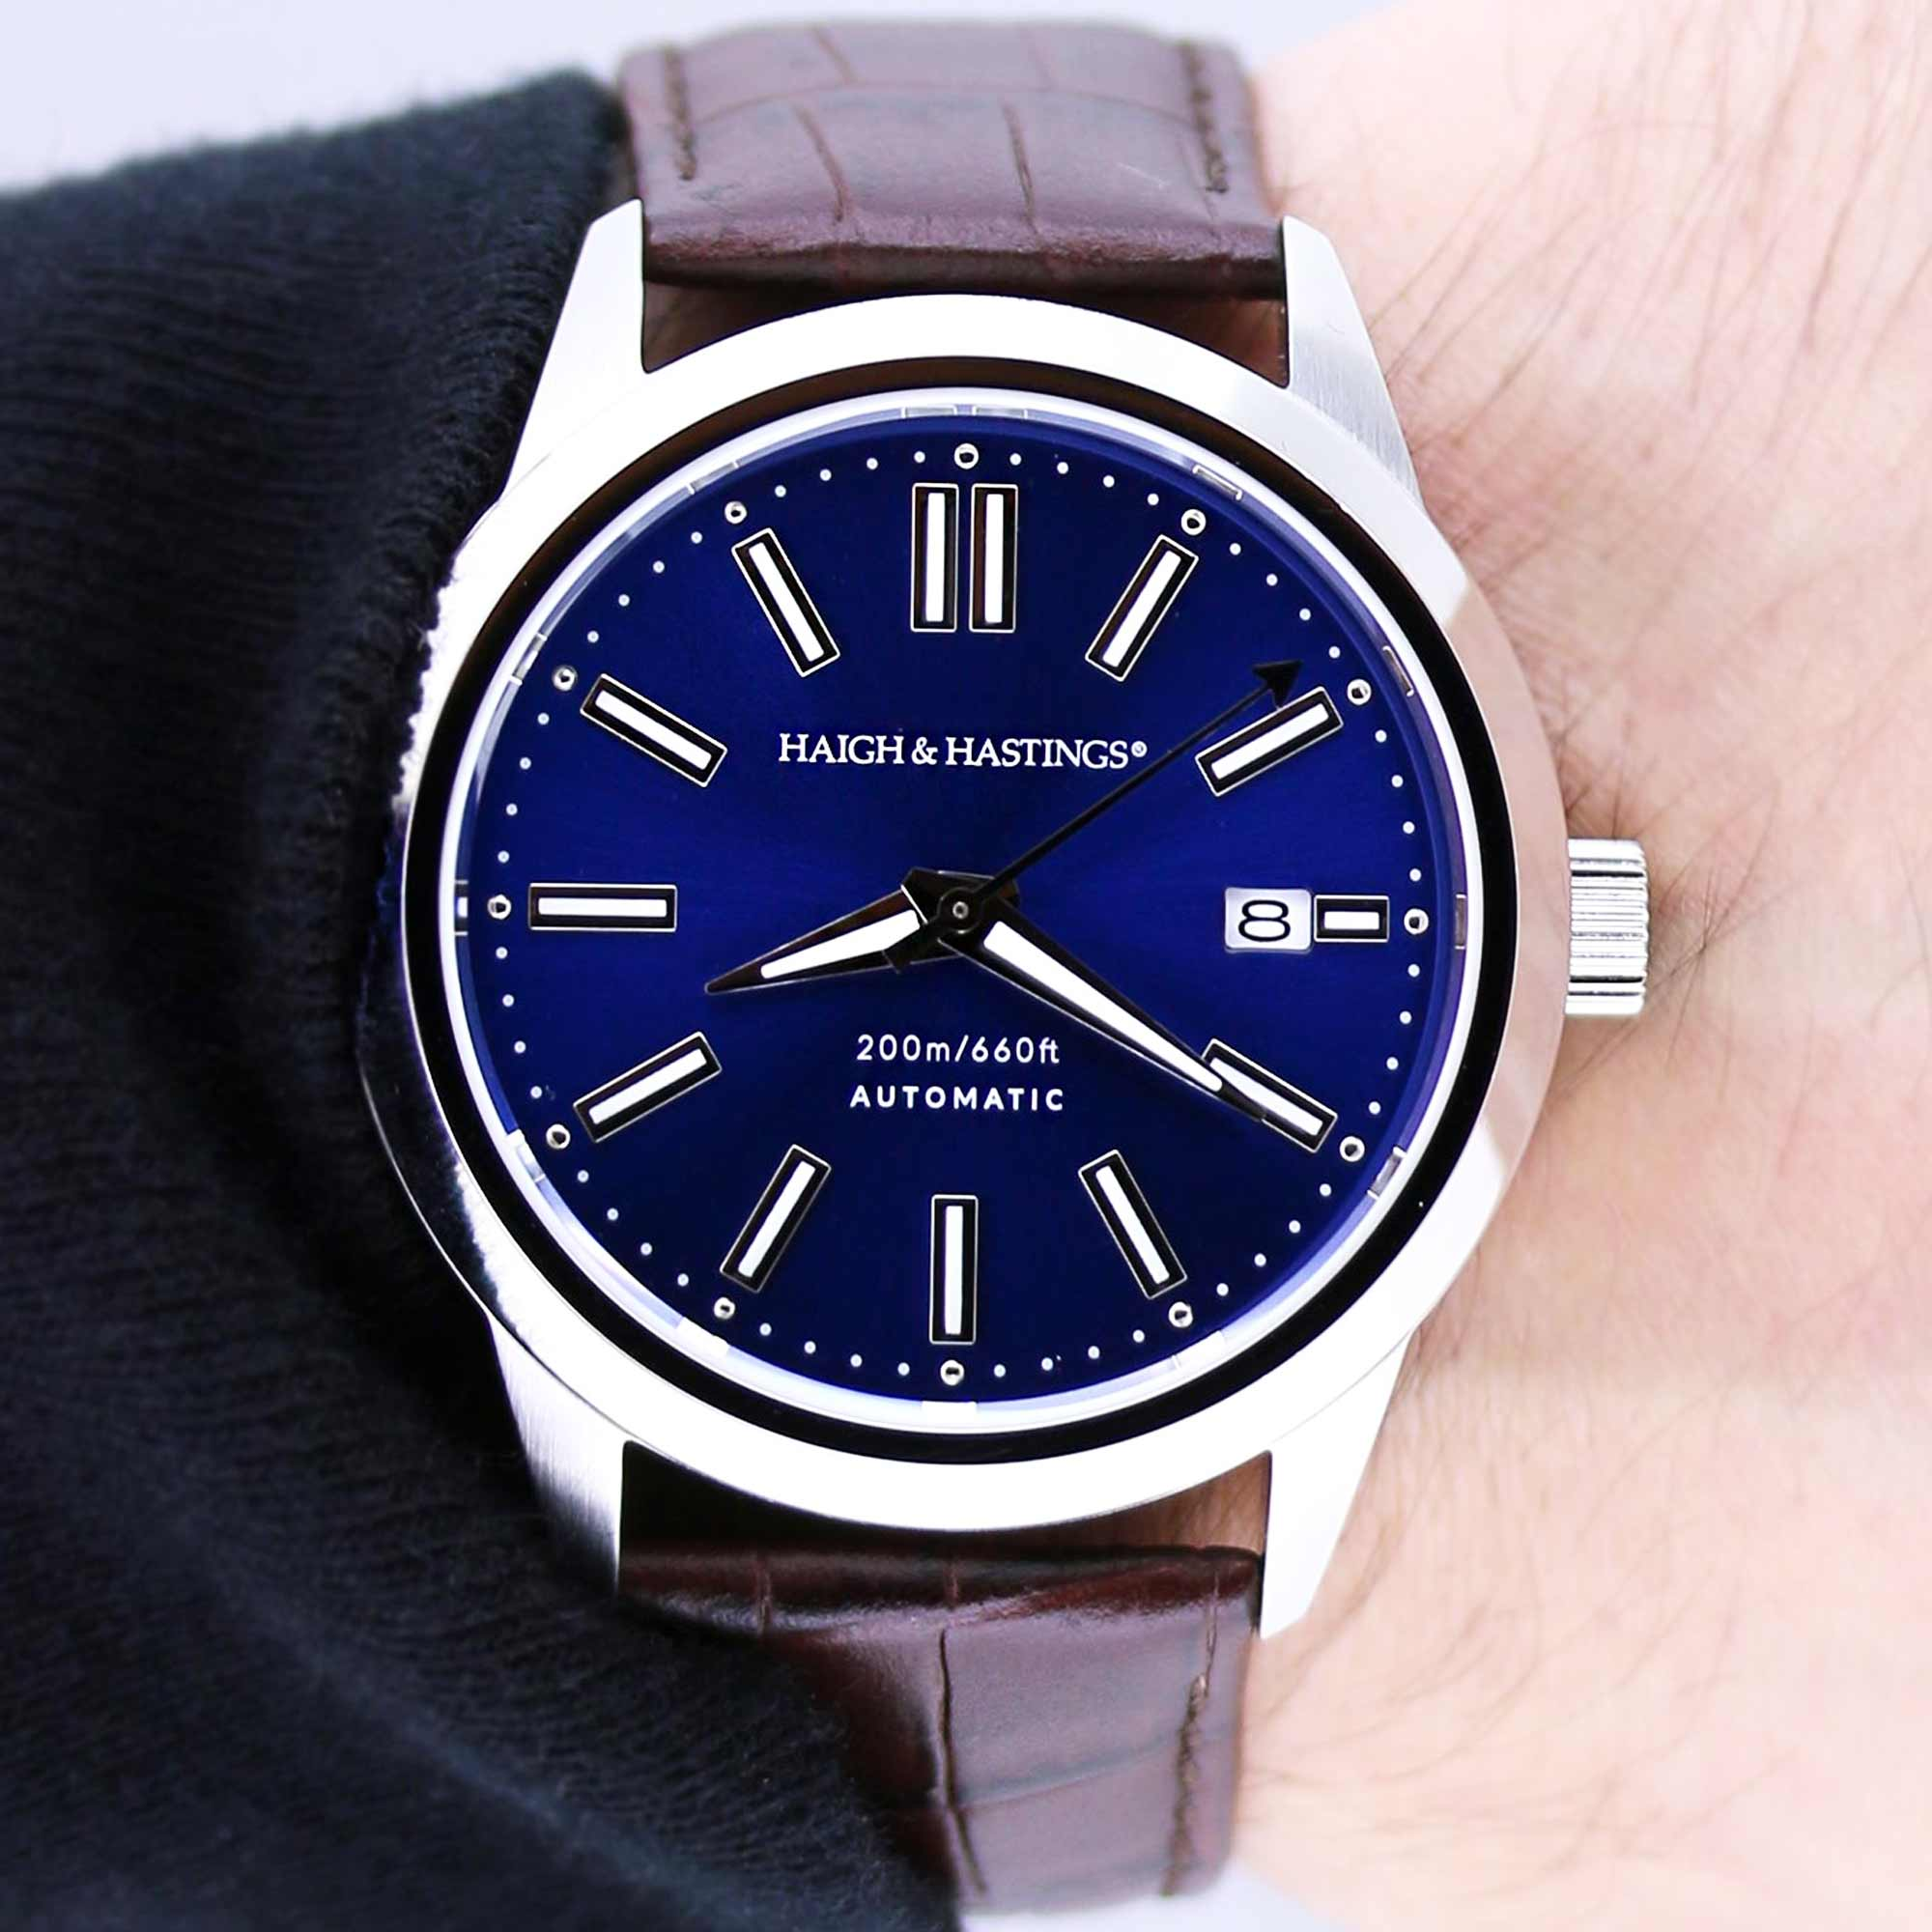 Haigh & Hastings Classic Automatic Watch